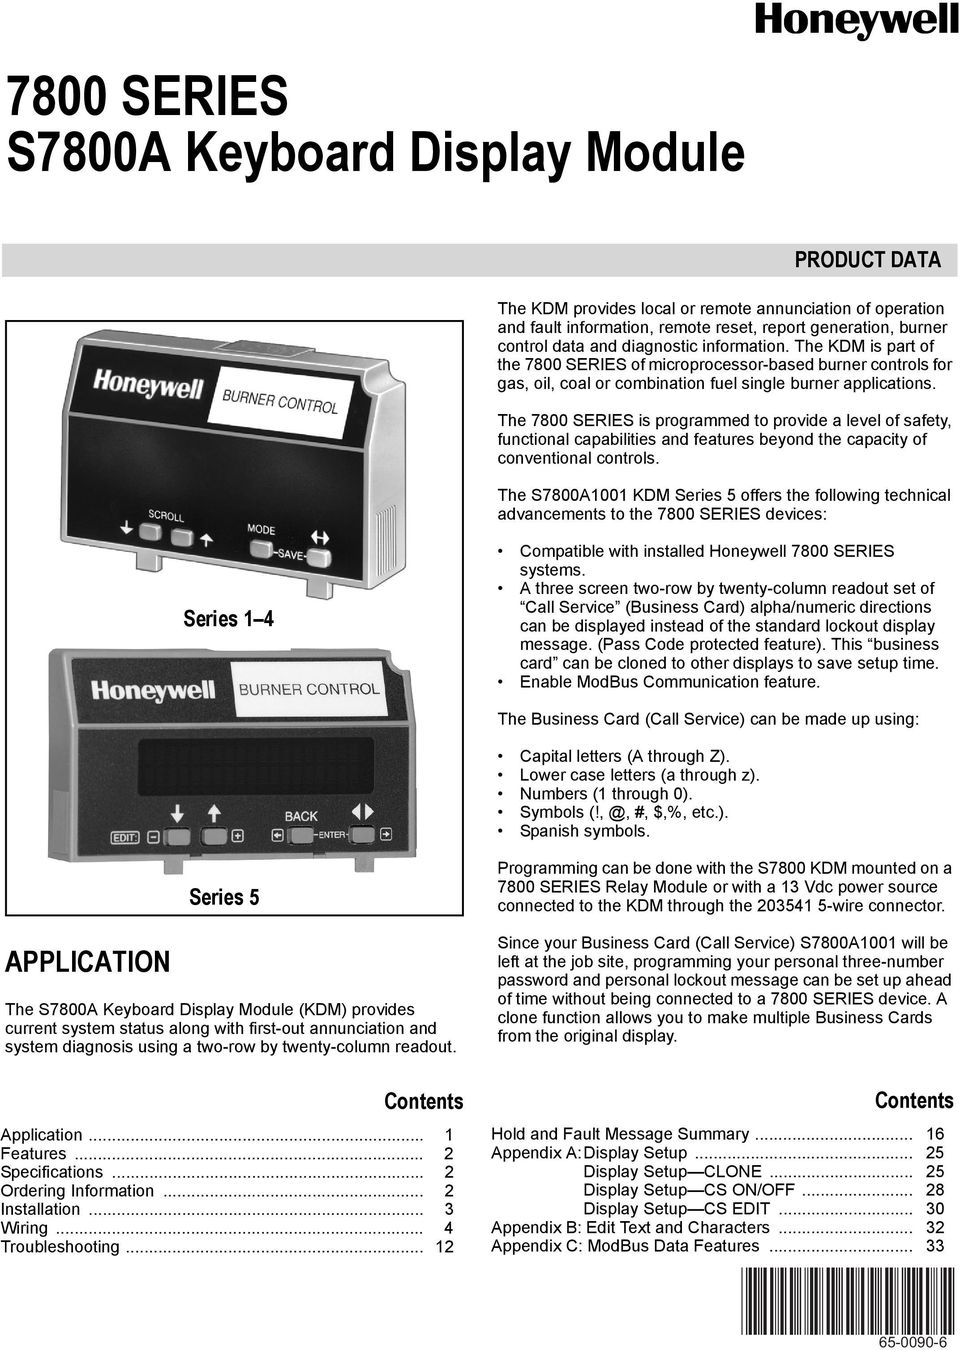 Honeywell 7800 Series Fault Codes Wiring Diagram The Is Programmed To Provide A Level Of Safety Functional Capabilities And Features 960x1350